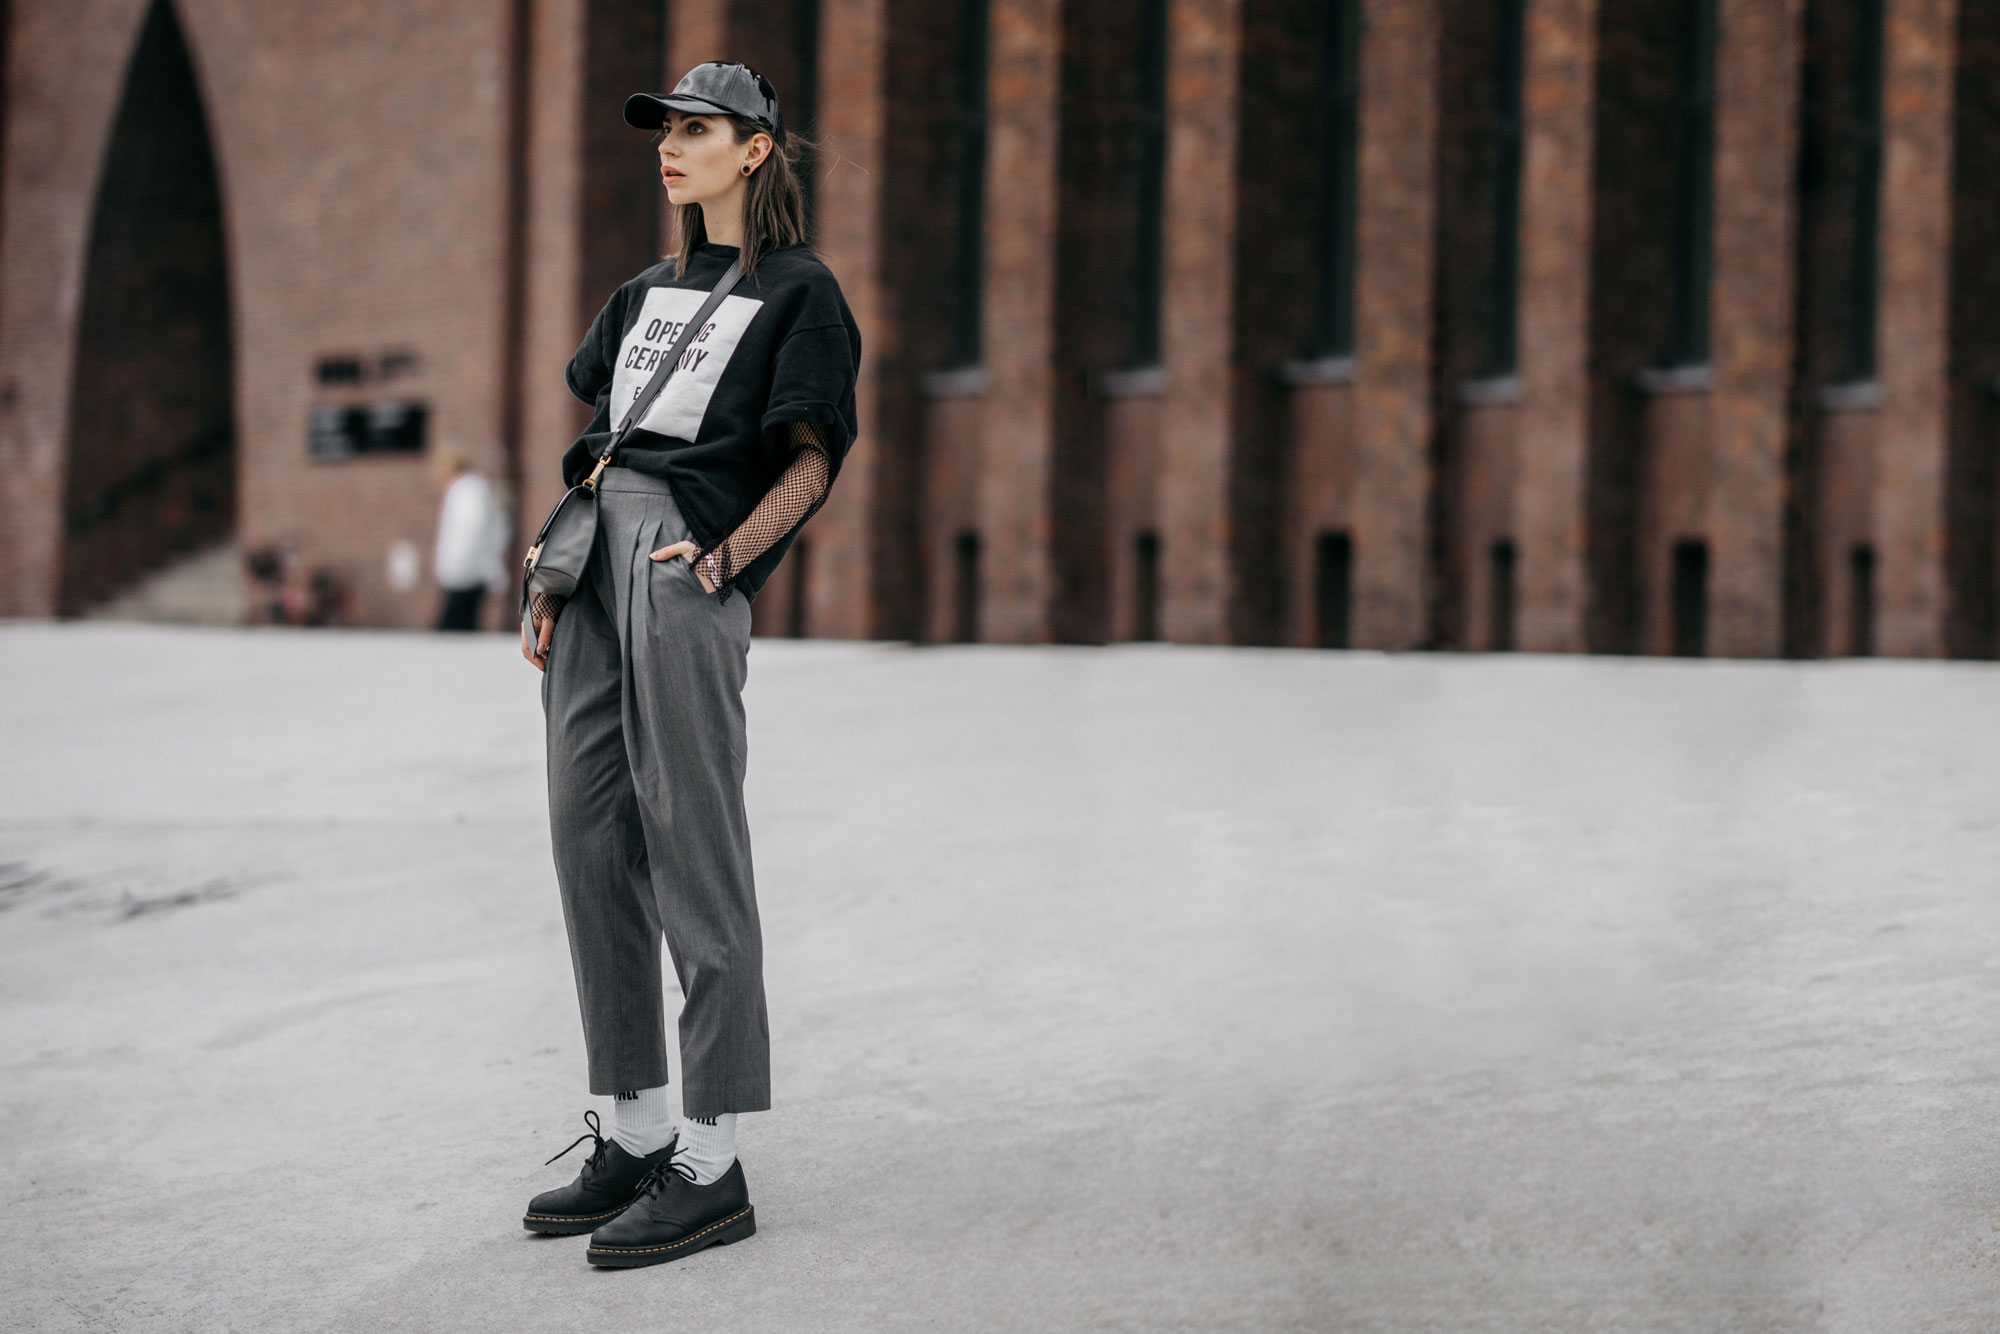 Outfit | Street Style in Berlin | Street Wear | Labels: Dr. Martens, Topshop, Opening Ceremony | style: casual, sporty, tomboy